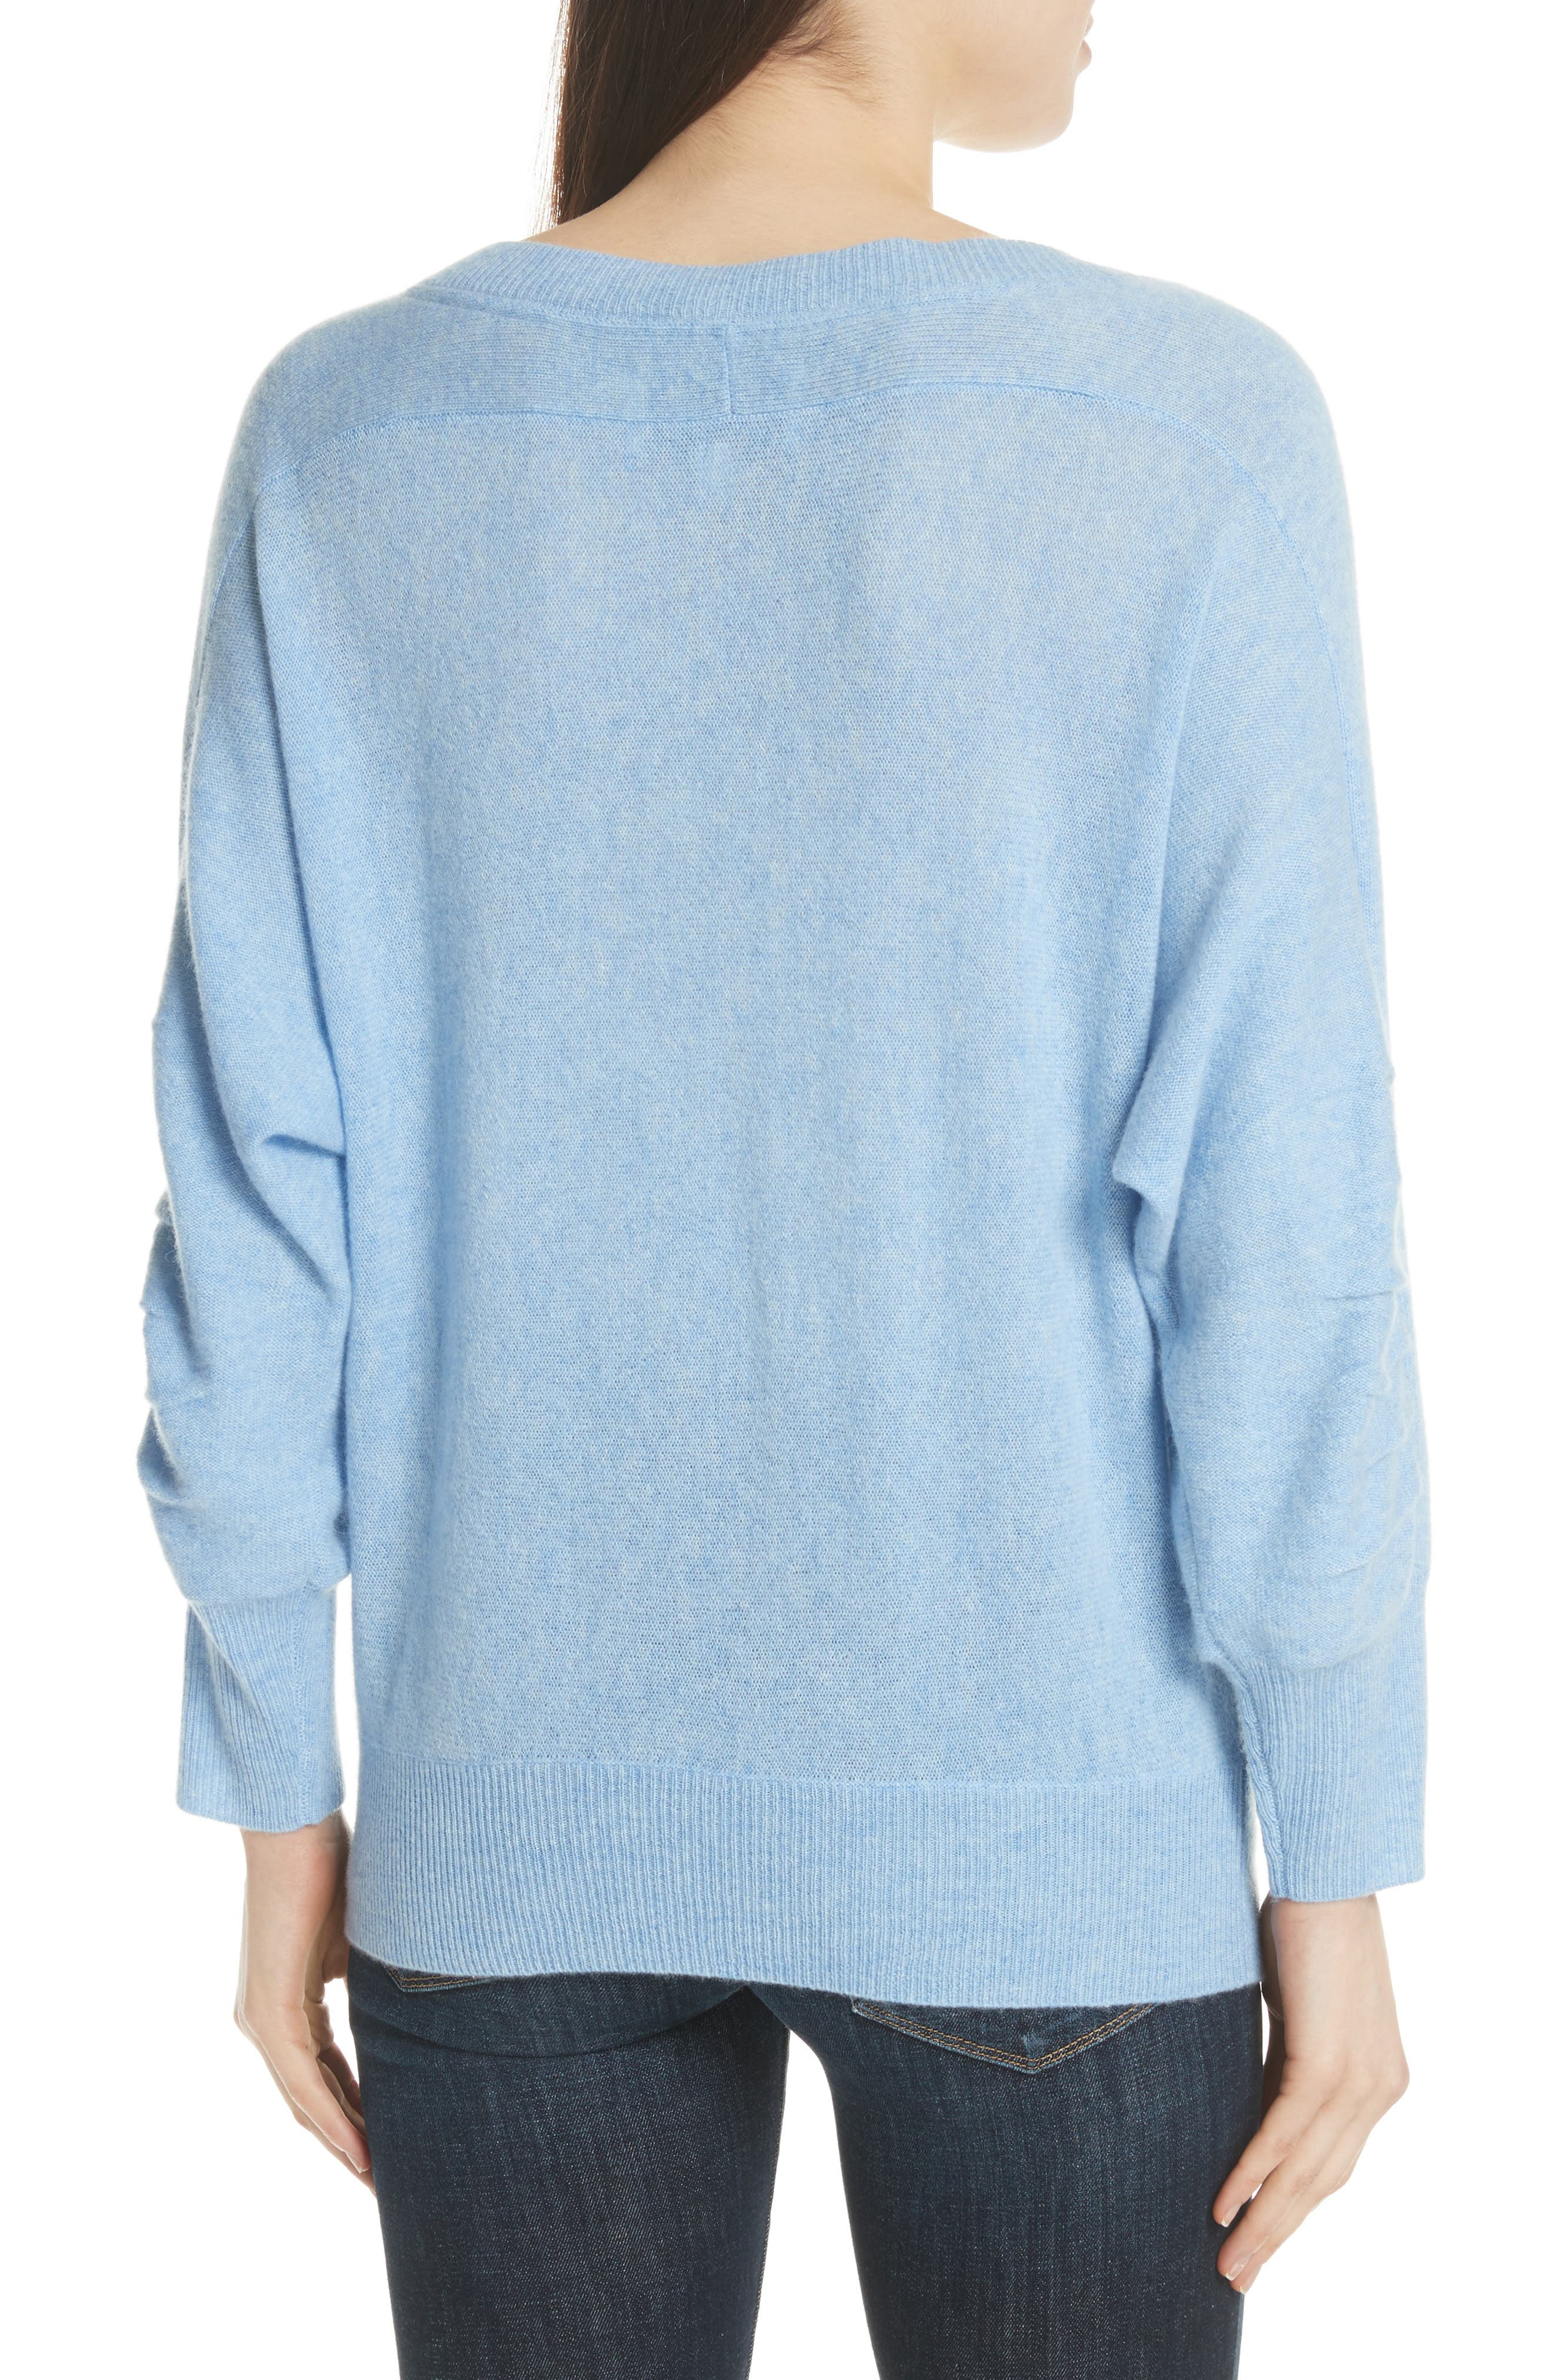 Weller Cashmere Sweater,                             Alternate thumbnail 4, color,